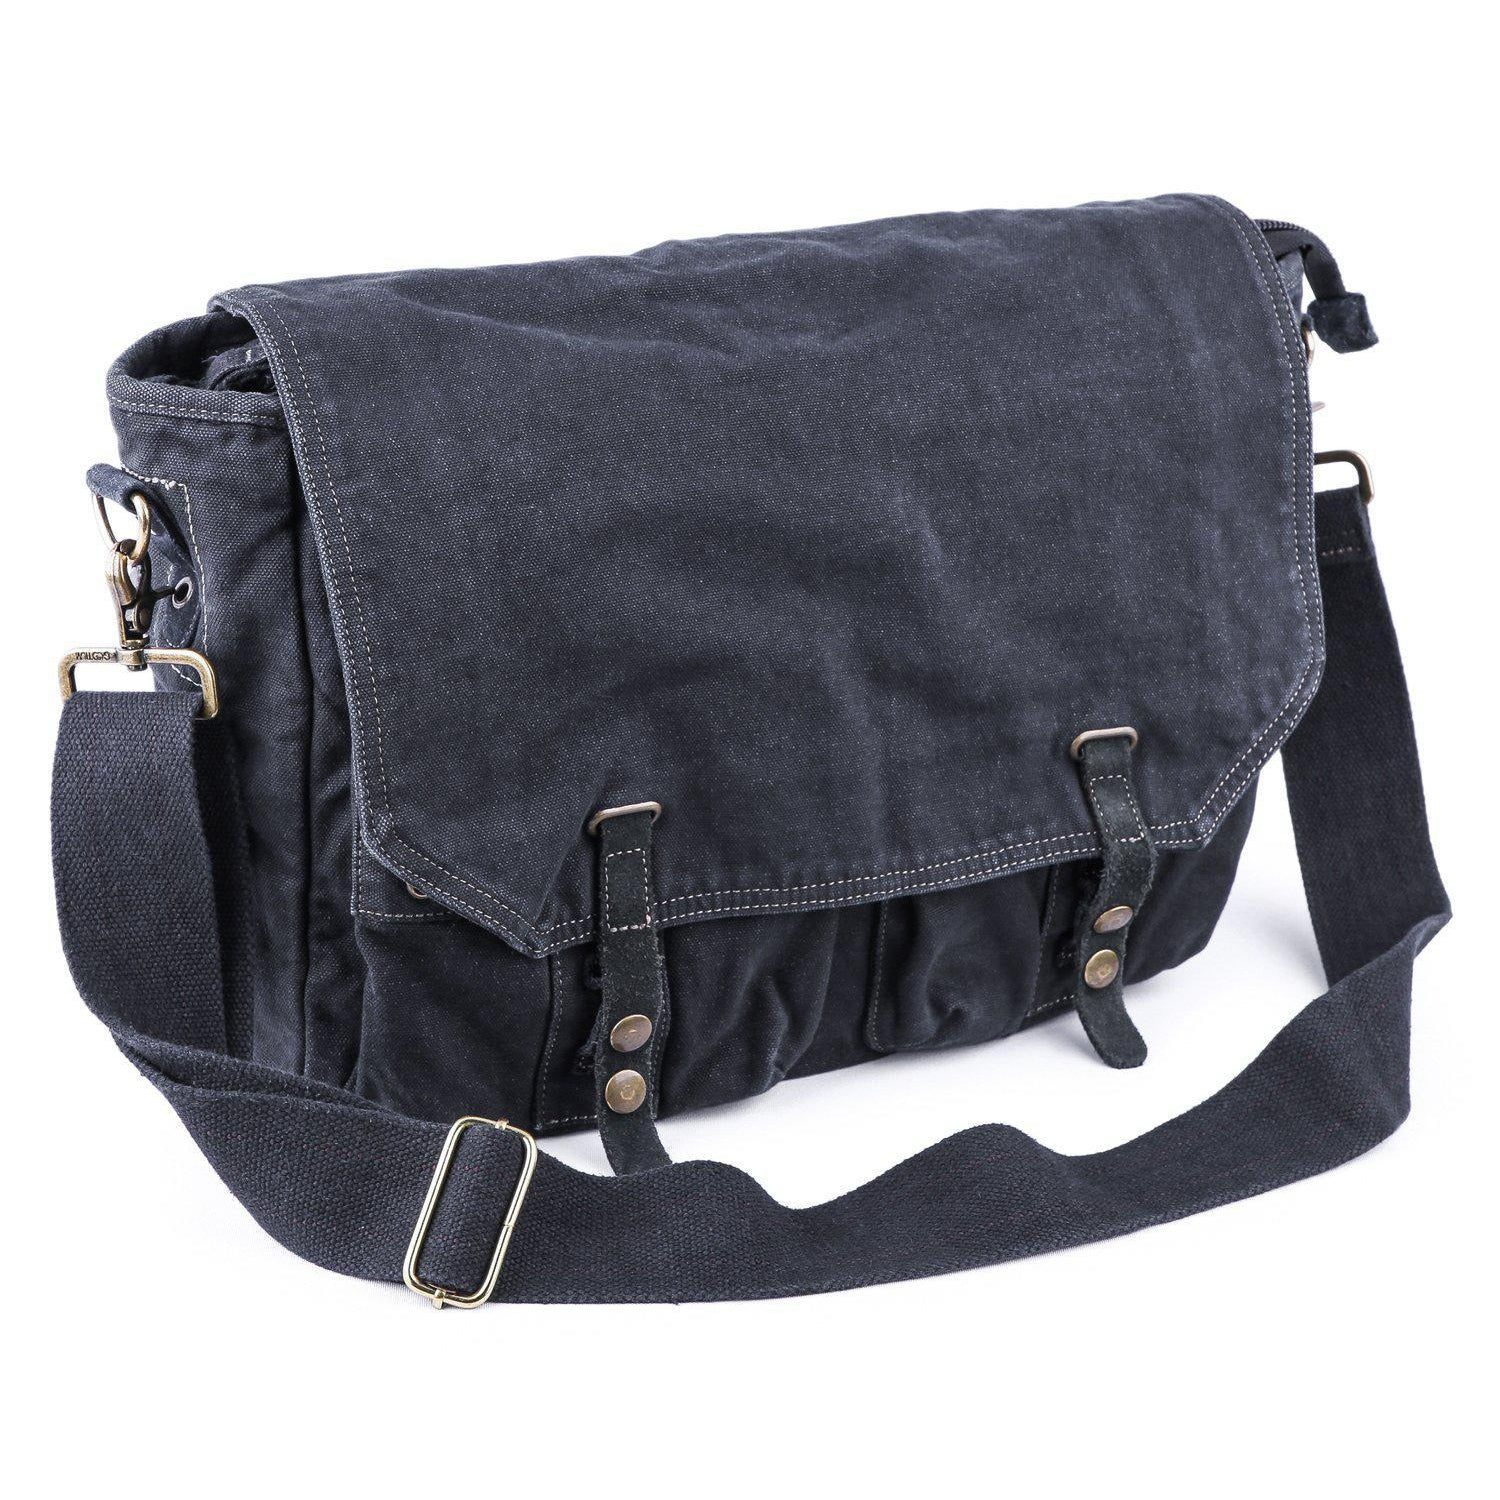 Leather Messenger Bags Canada- Fenix Toulouse Handball 6e093a3c9fc72